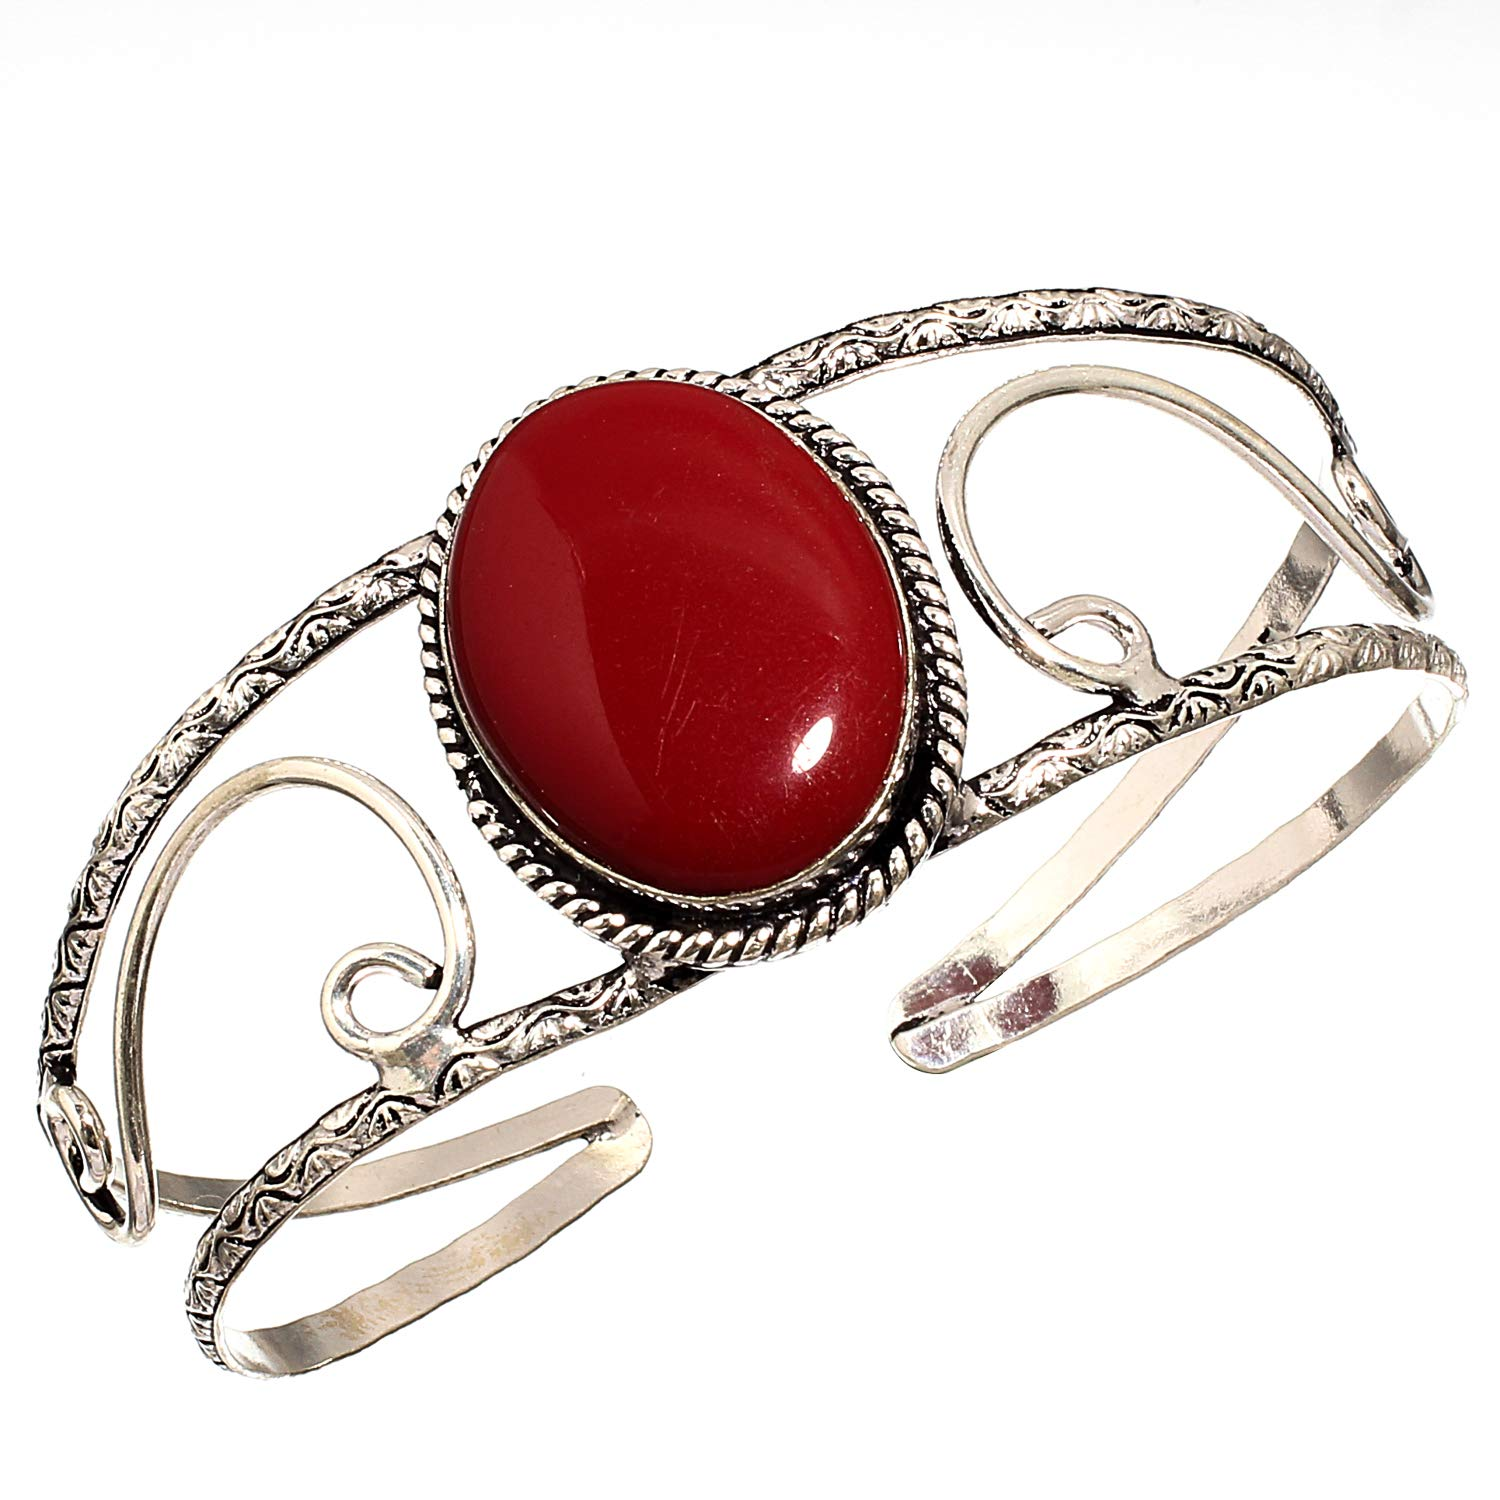 Ethnic Wear Red Coral Sterling Silver Overlay Ring Size 7 US Handmade Jewelry